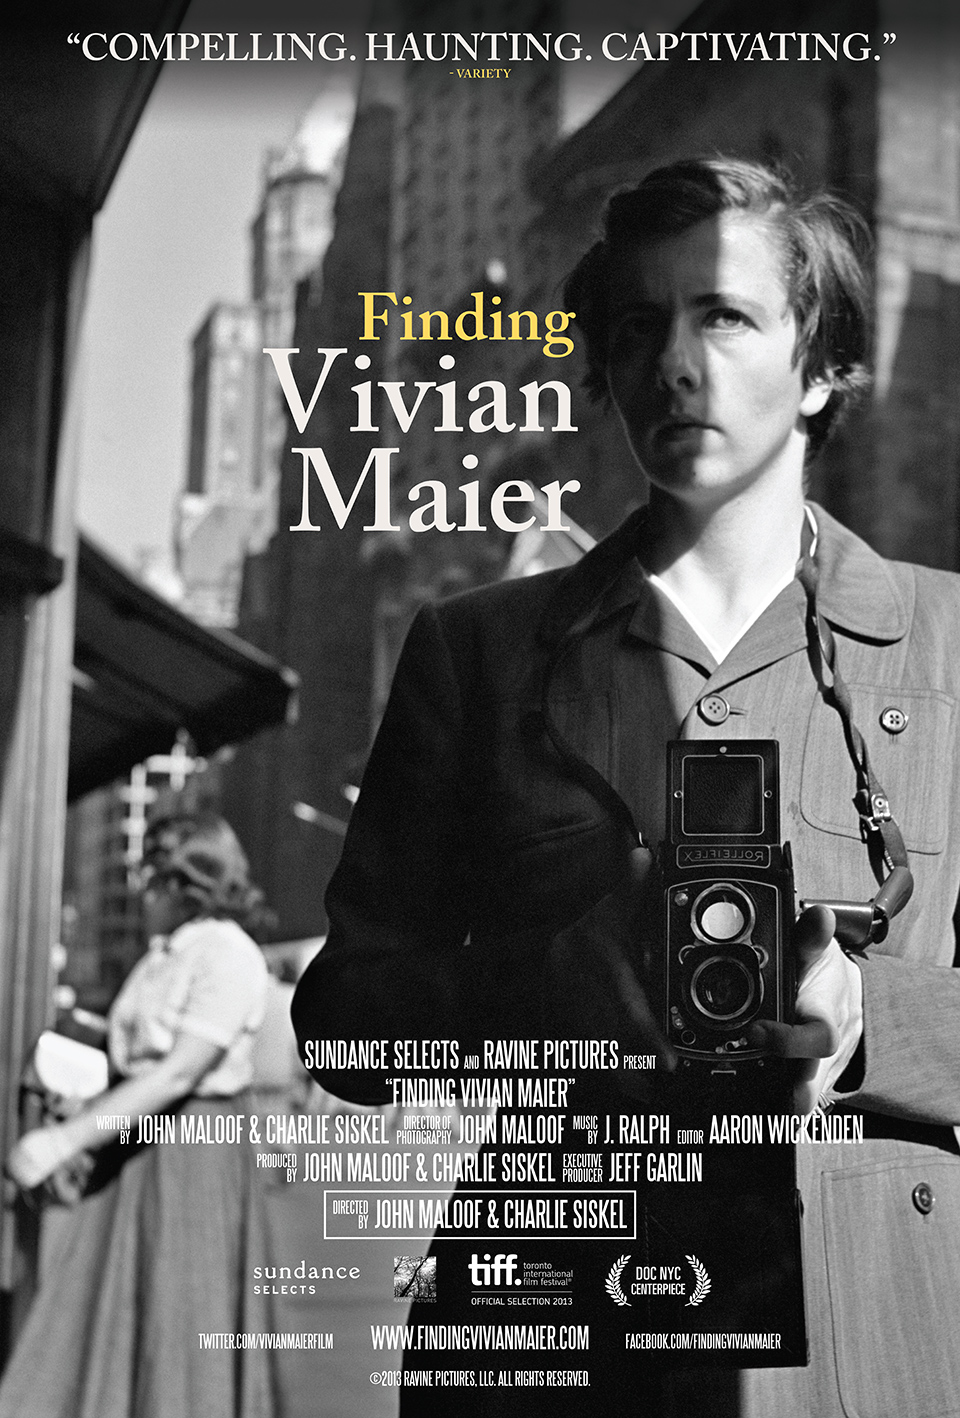 3028443-slide-s-5-finding-vivian-maier-reveals-the-strange-life-of-a-reclusive-street-photographer